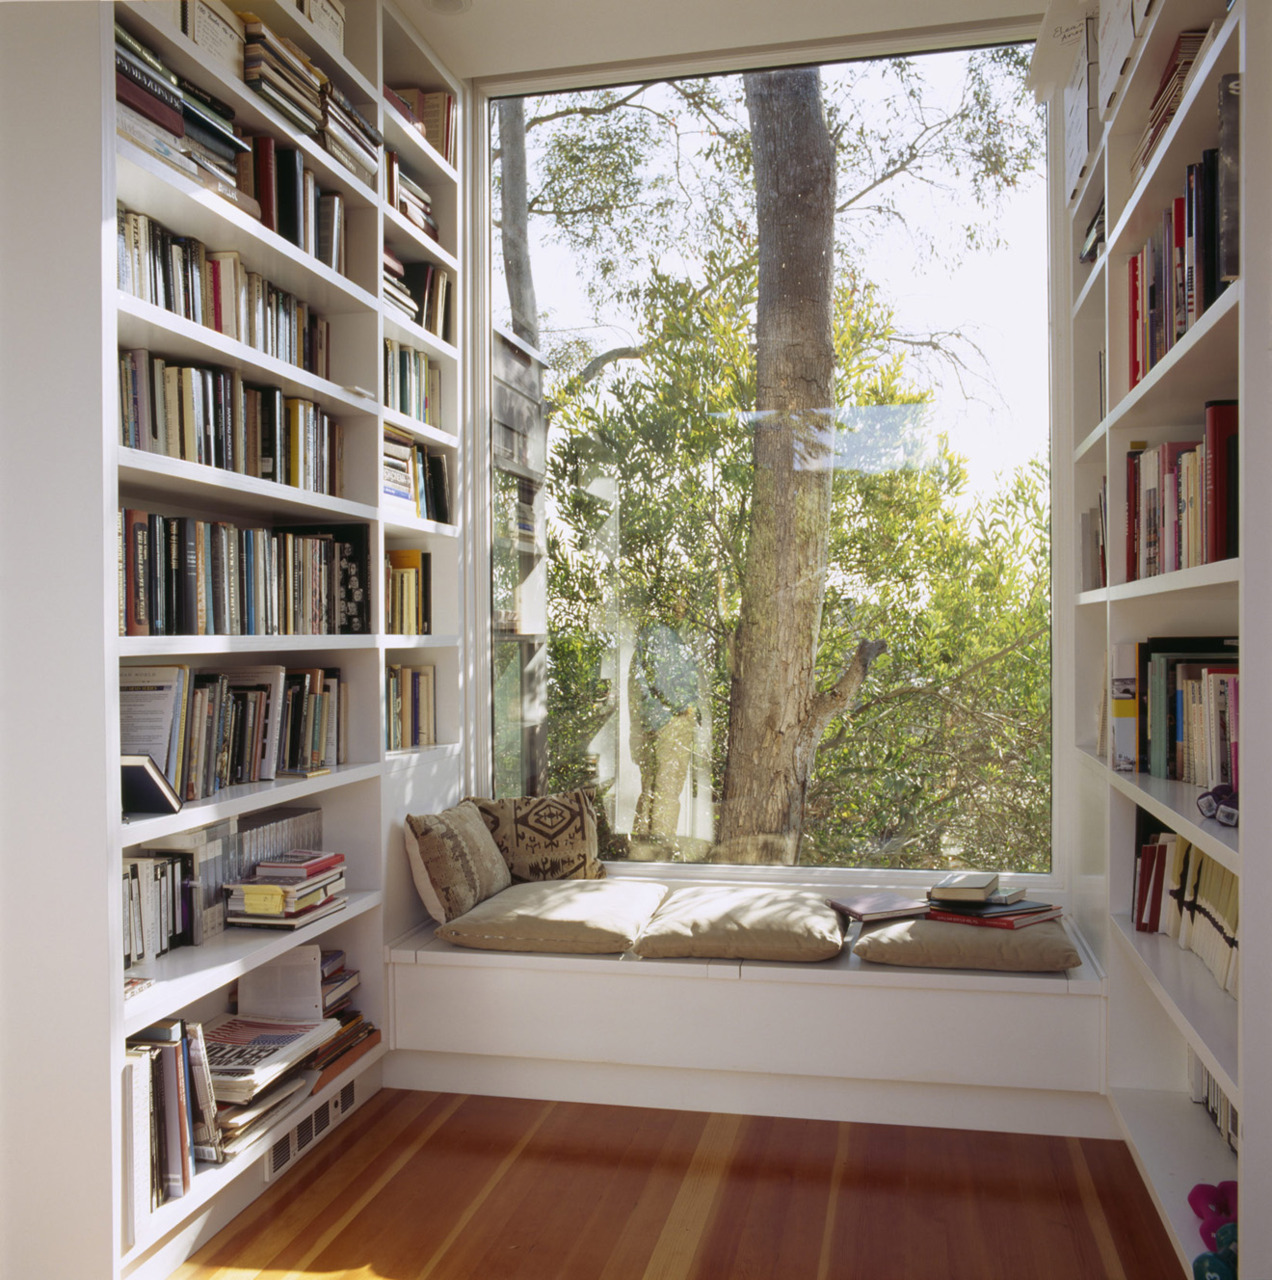 Book essay glass into looking reading wood world